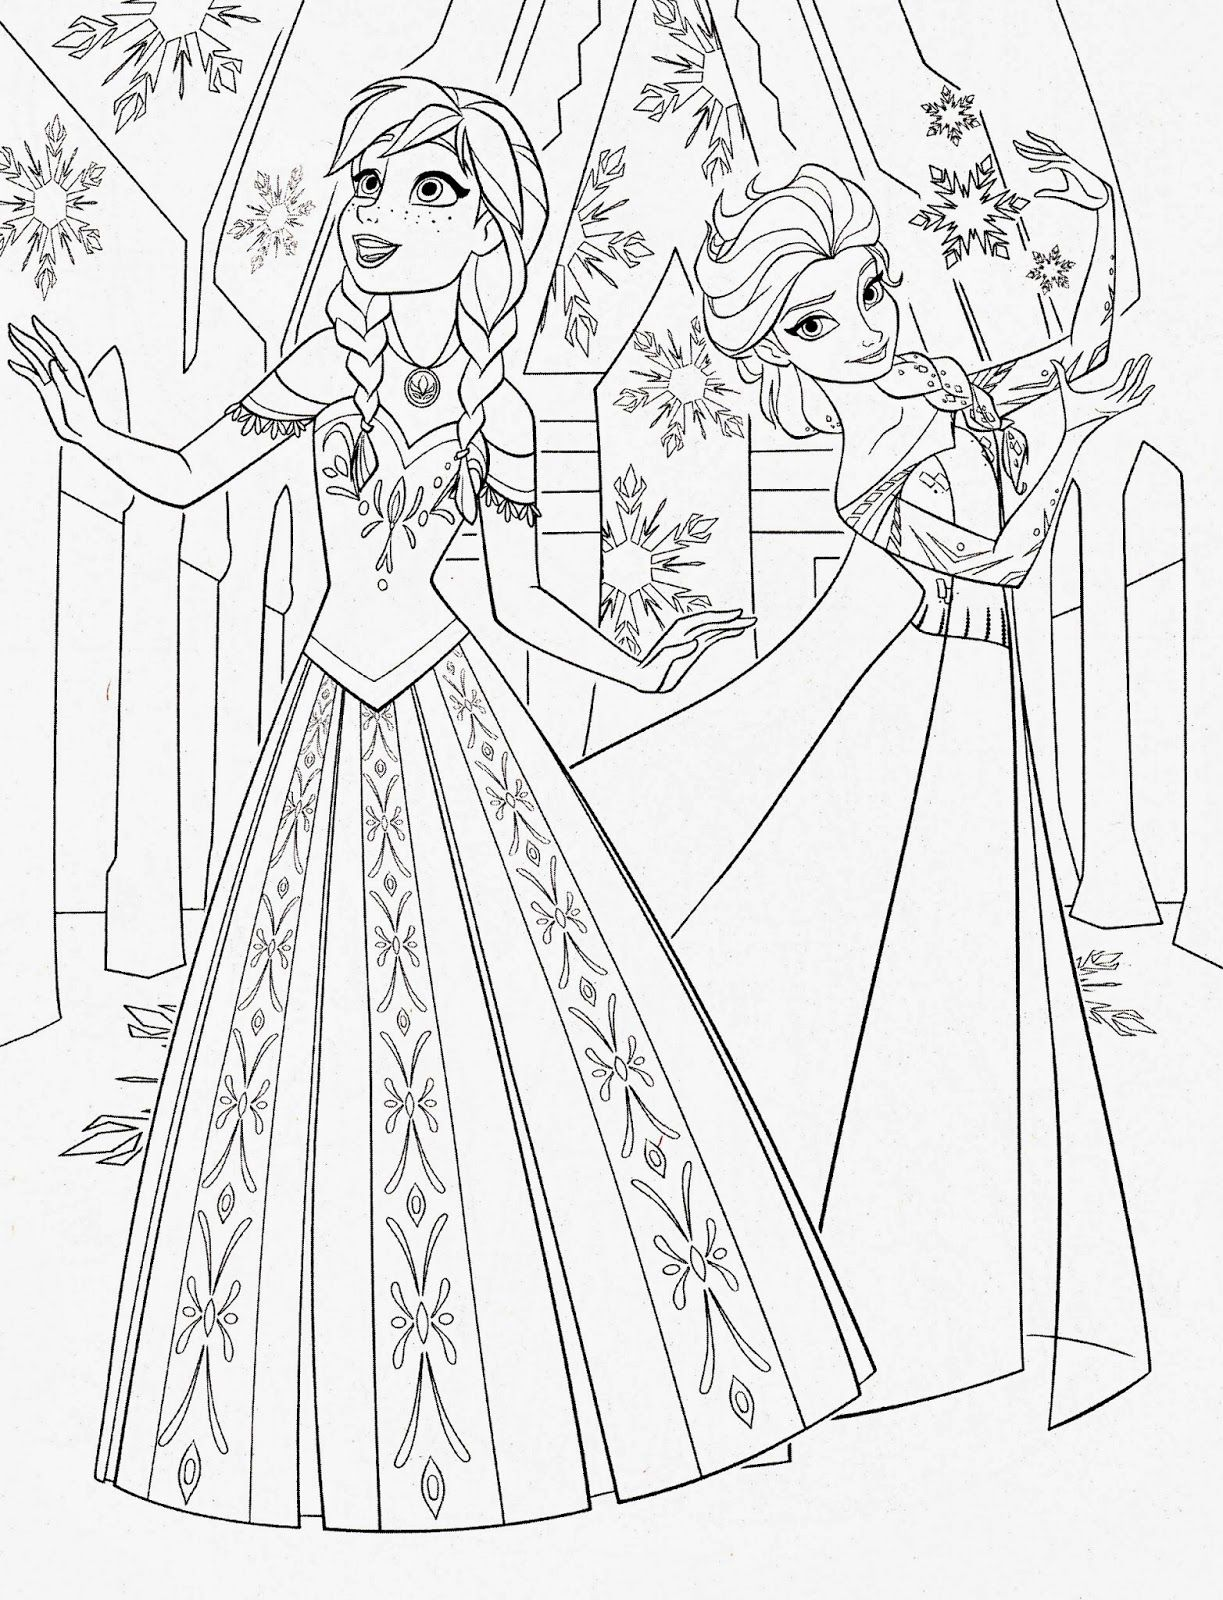 Coloring pages frozen - Frozen Coloring Pages Fun Frozen Coloring Pages